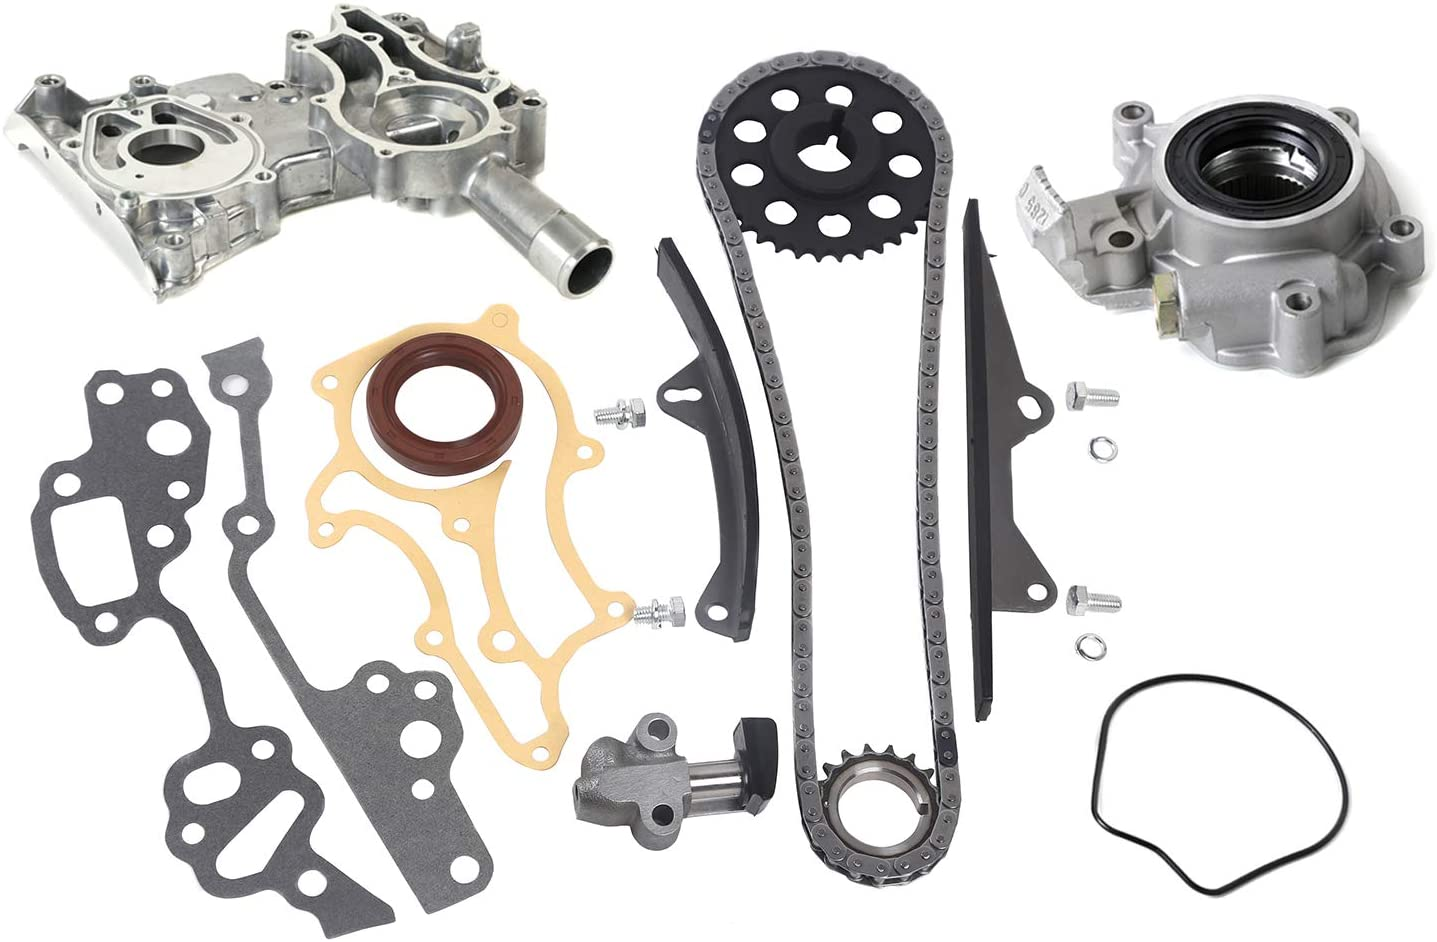 MOCA Timing Chain Kit Oil Pump with Cover for 1985-1995 for TOYOTA Celica Pickup 4Runner 2.4L L4 8V SOHC R 22R 22RE 22REC